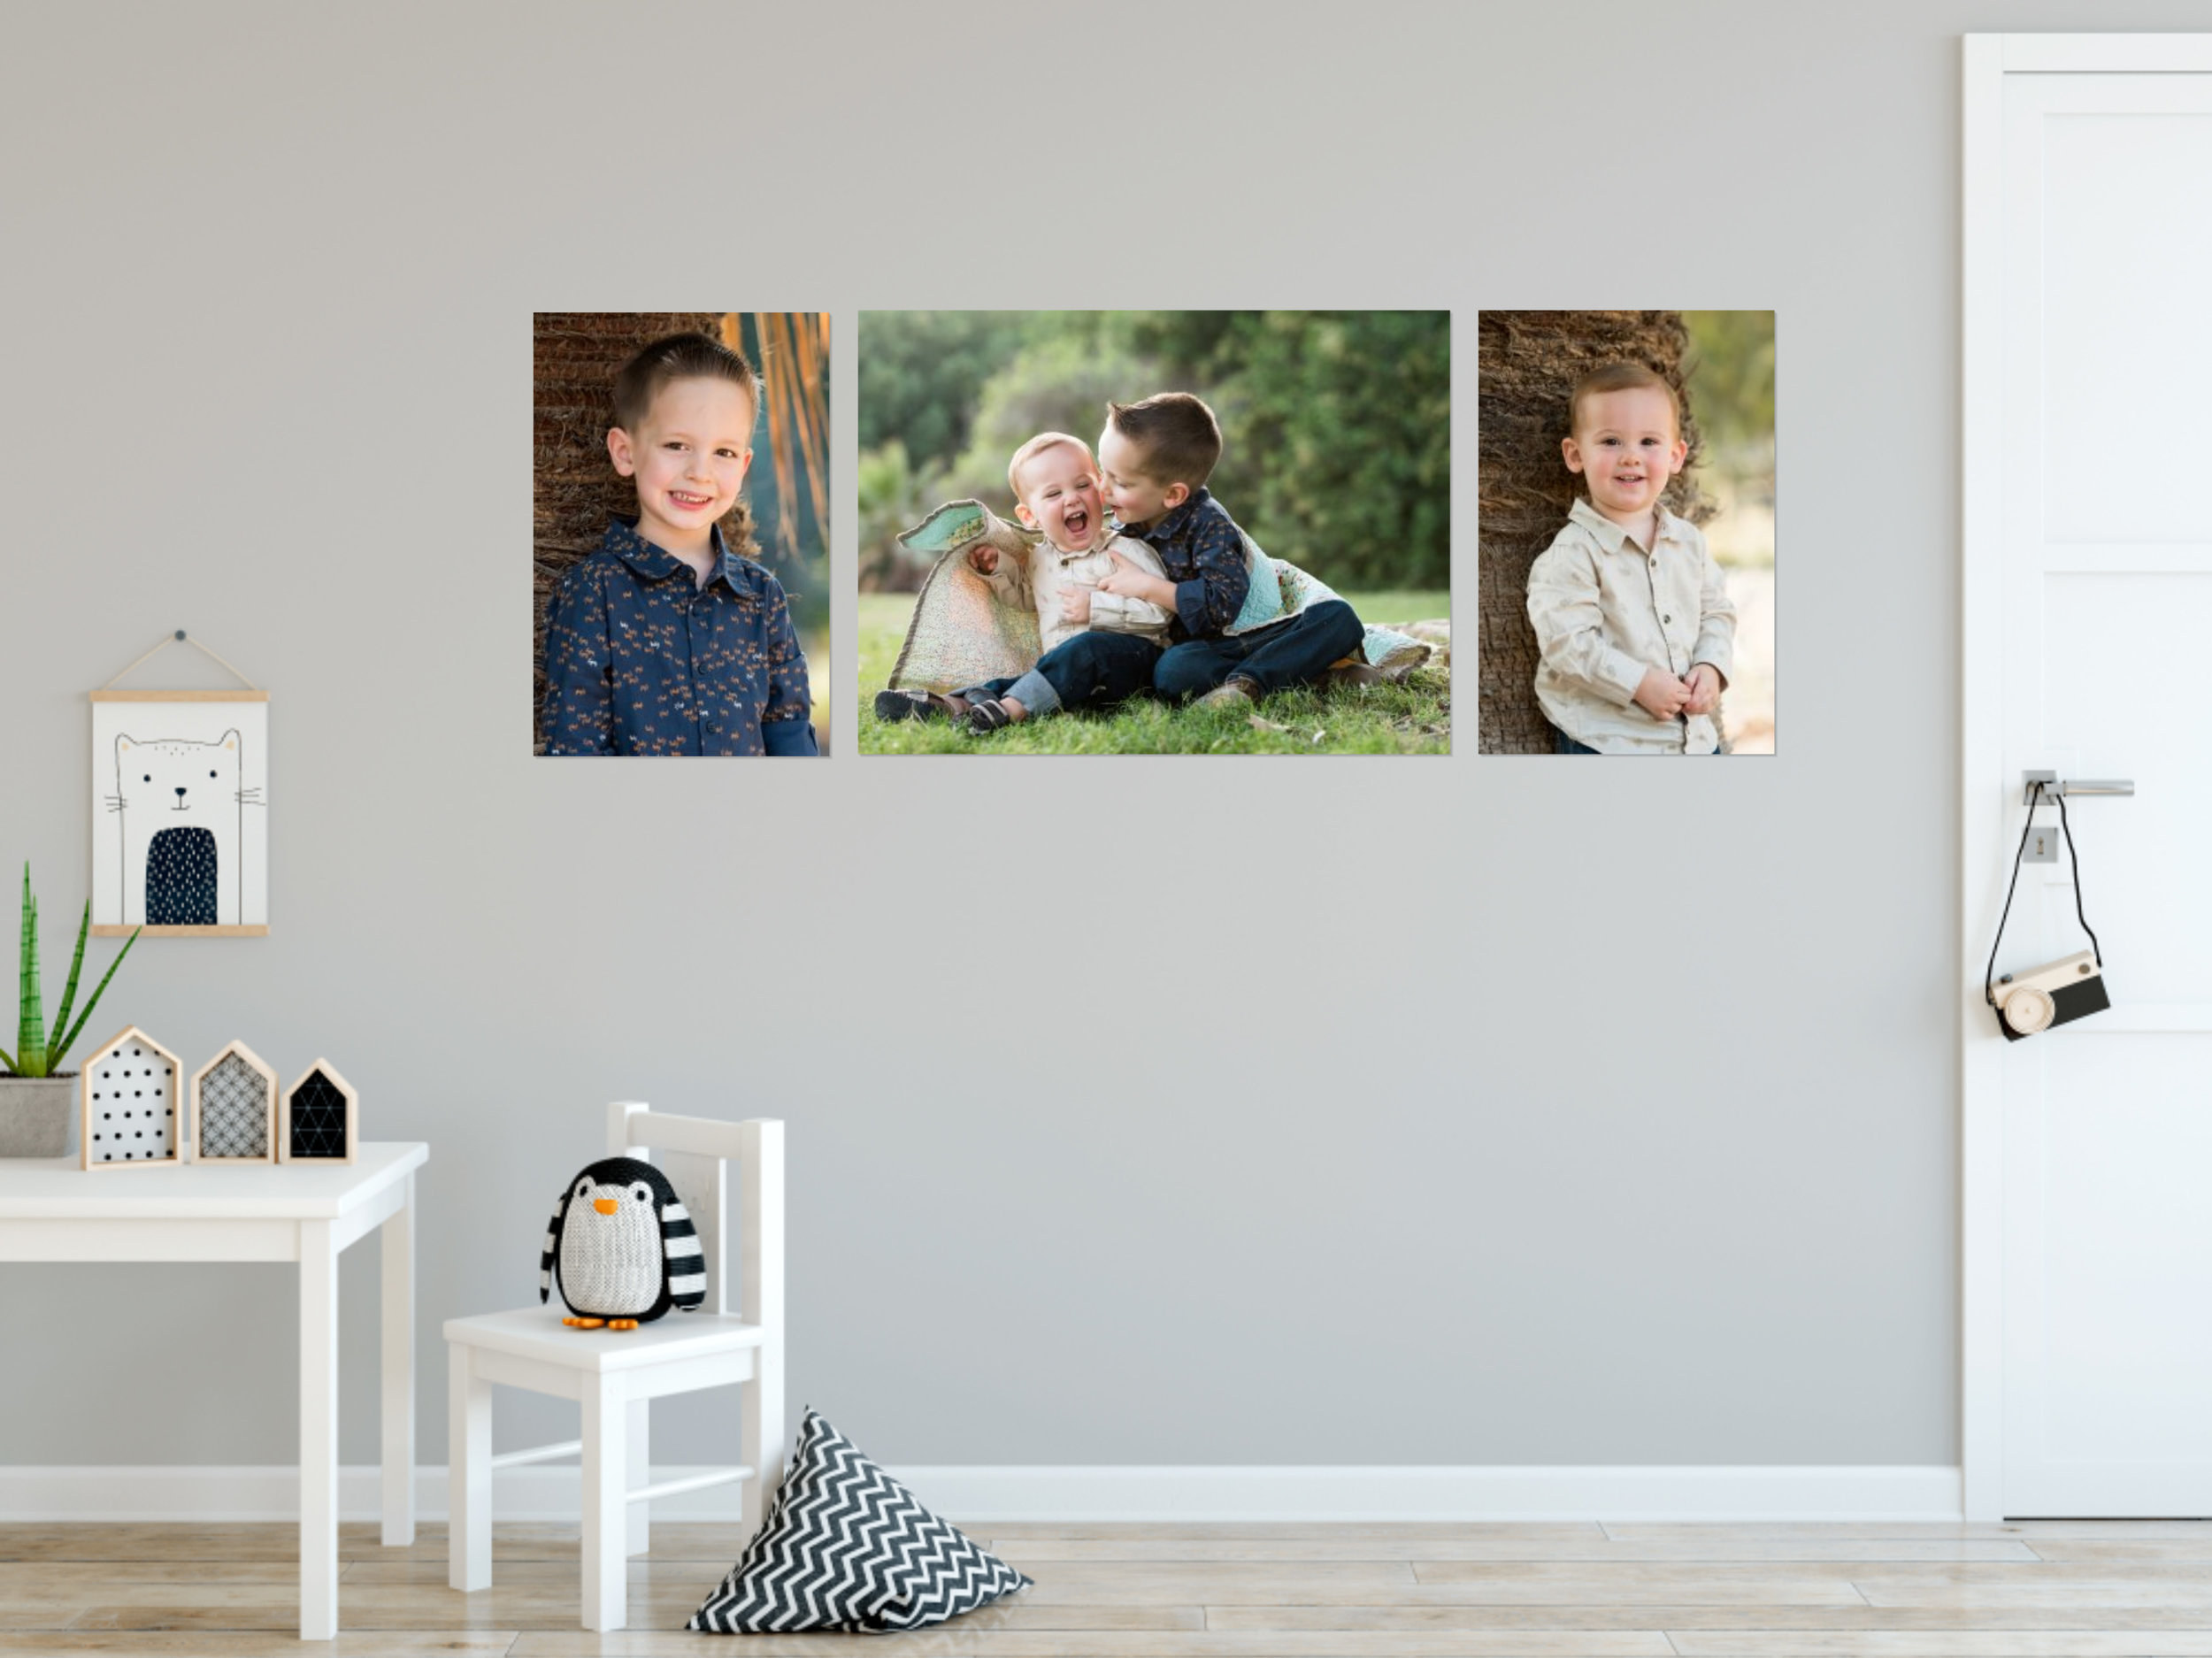 Victoria BC Family Photographer gallery wall (2).jpg